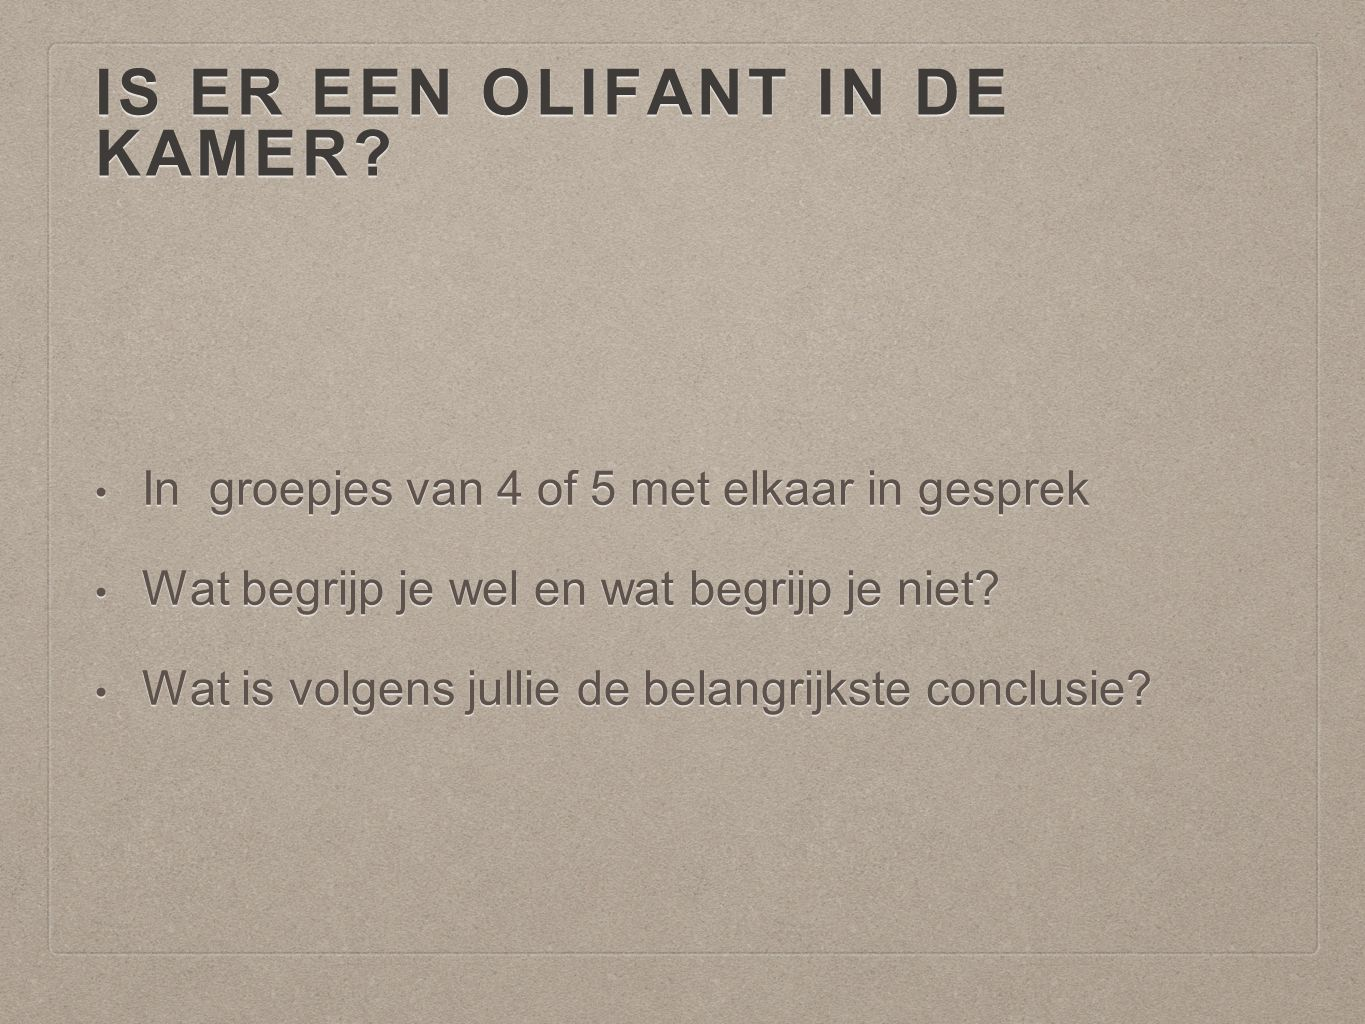 Is er een olifant in de kamer